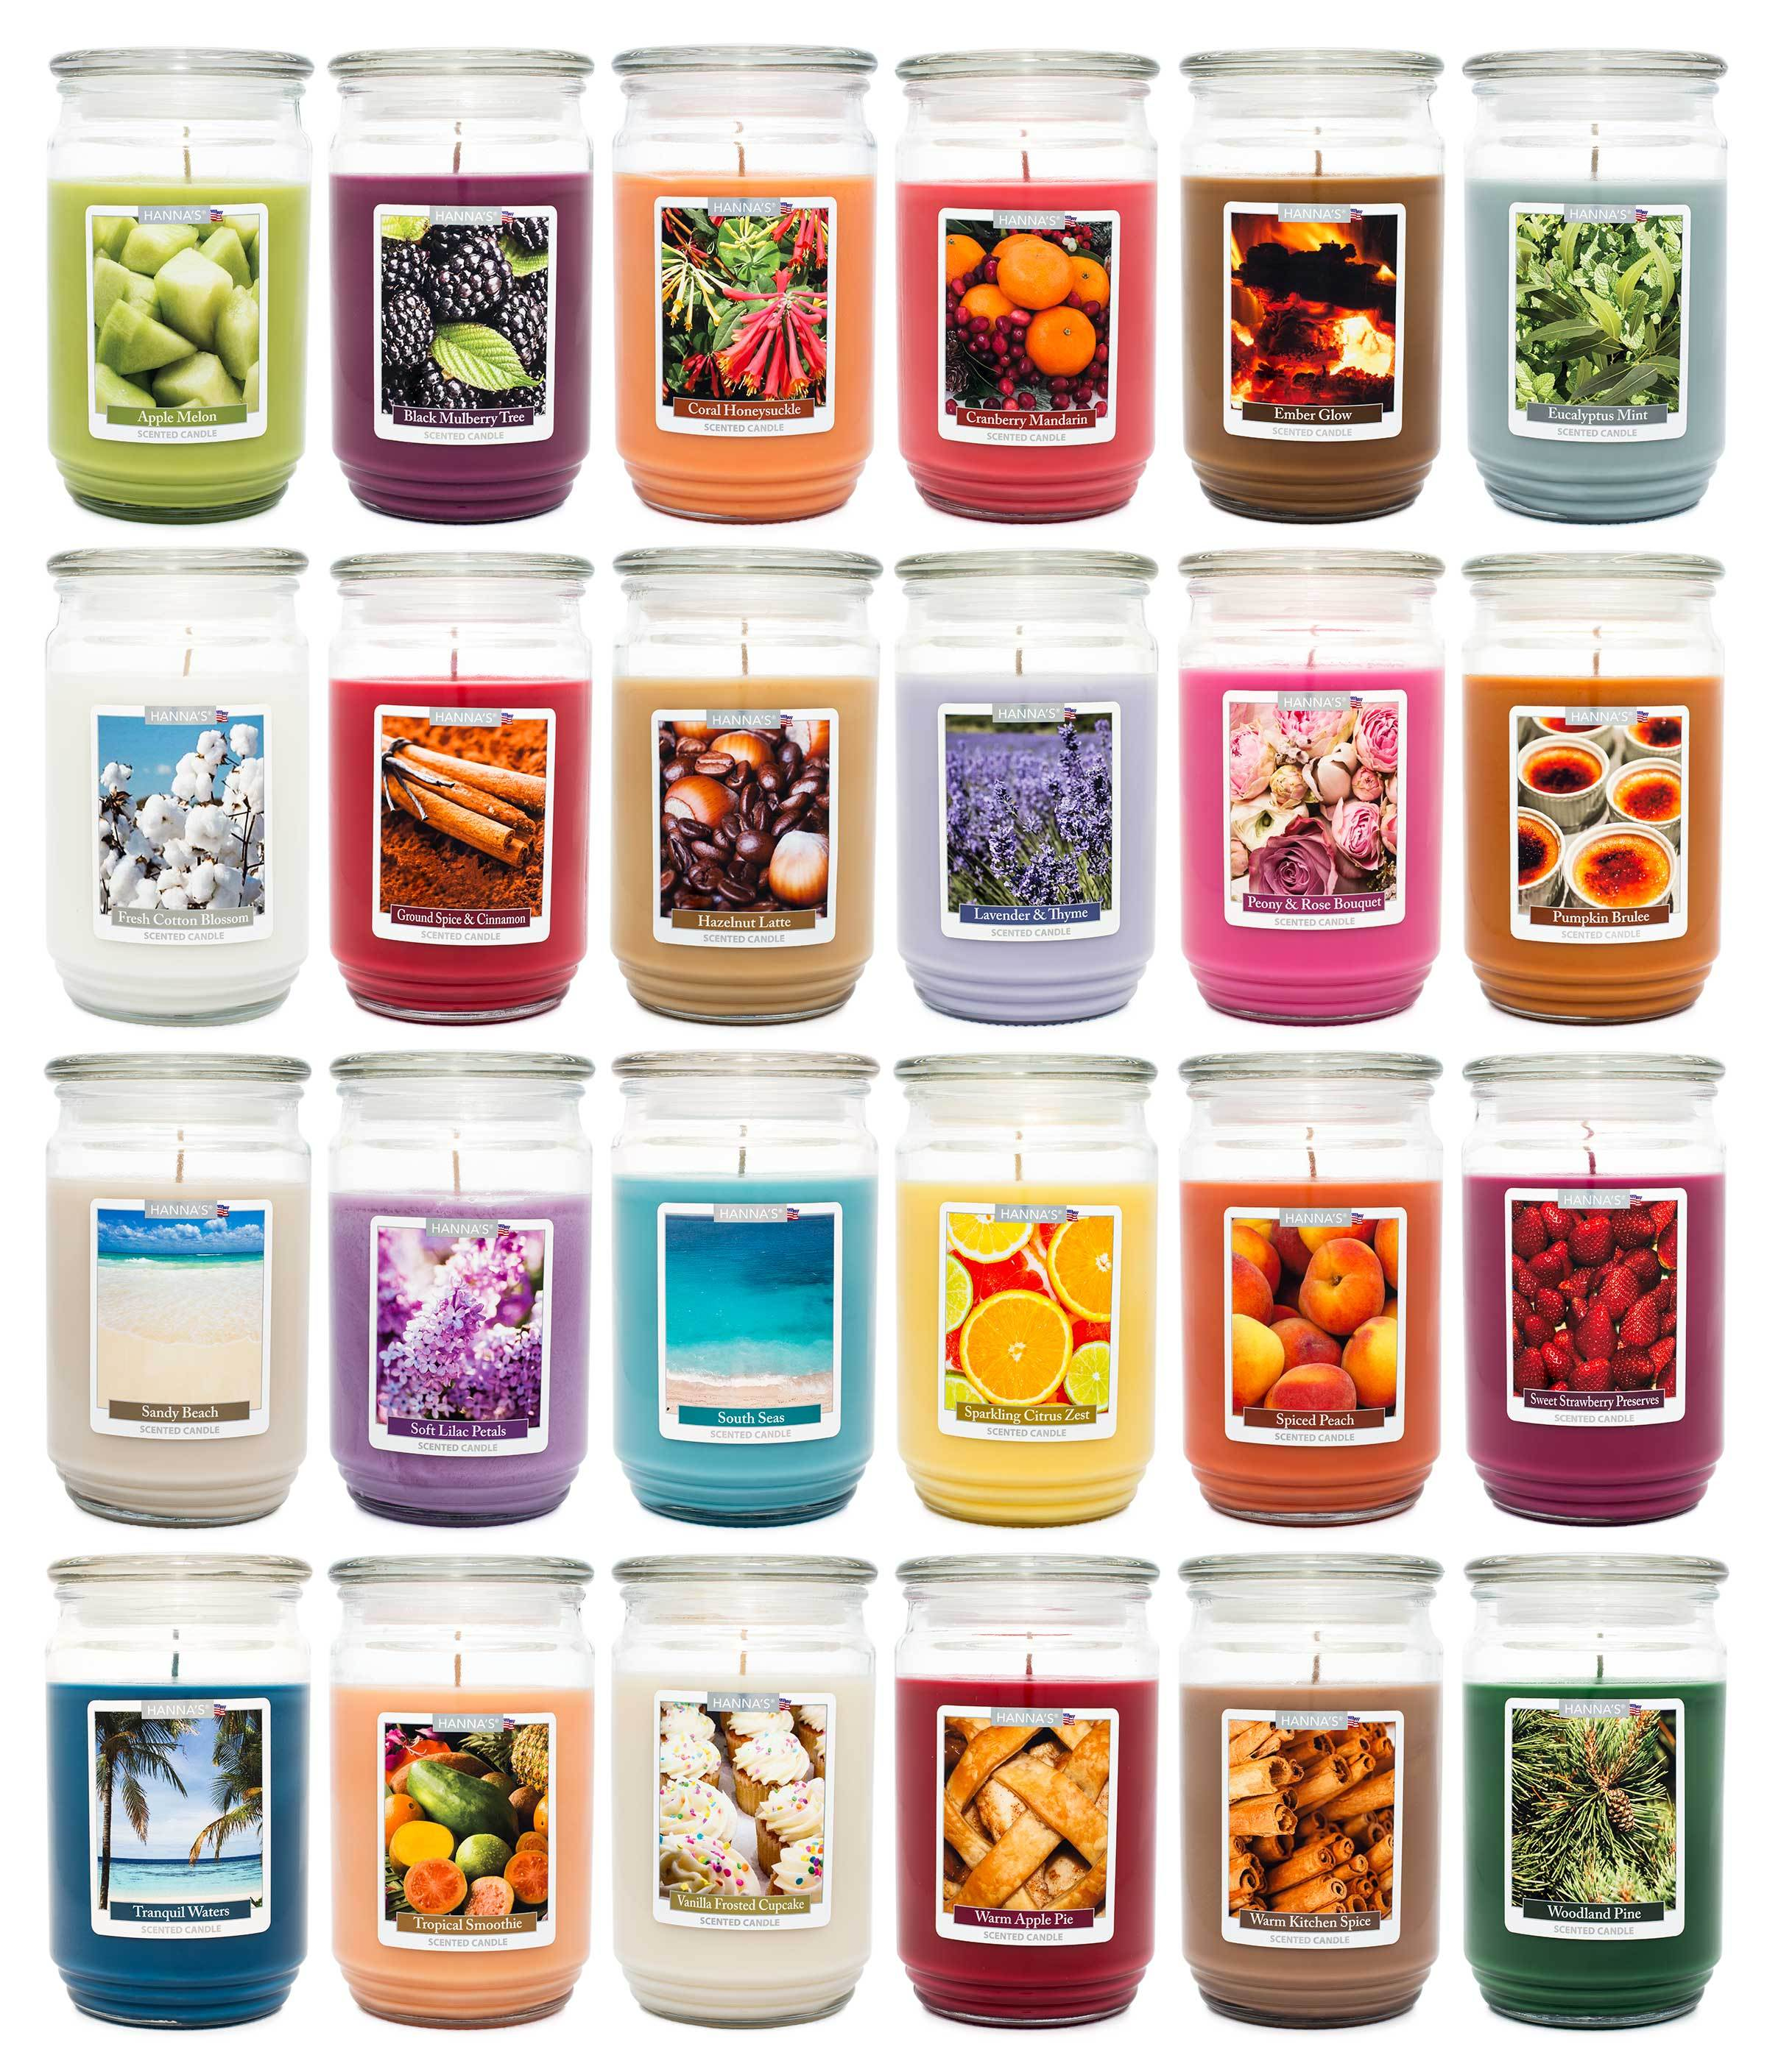 Sandy Beach Scented Large Candle - Candlemart.com